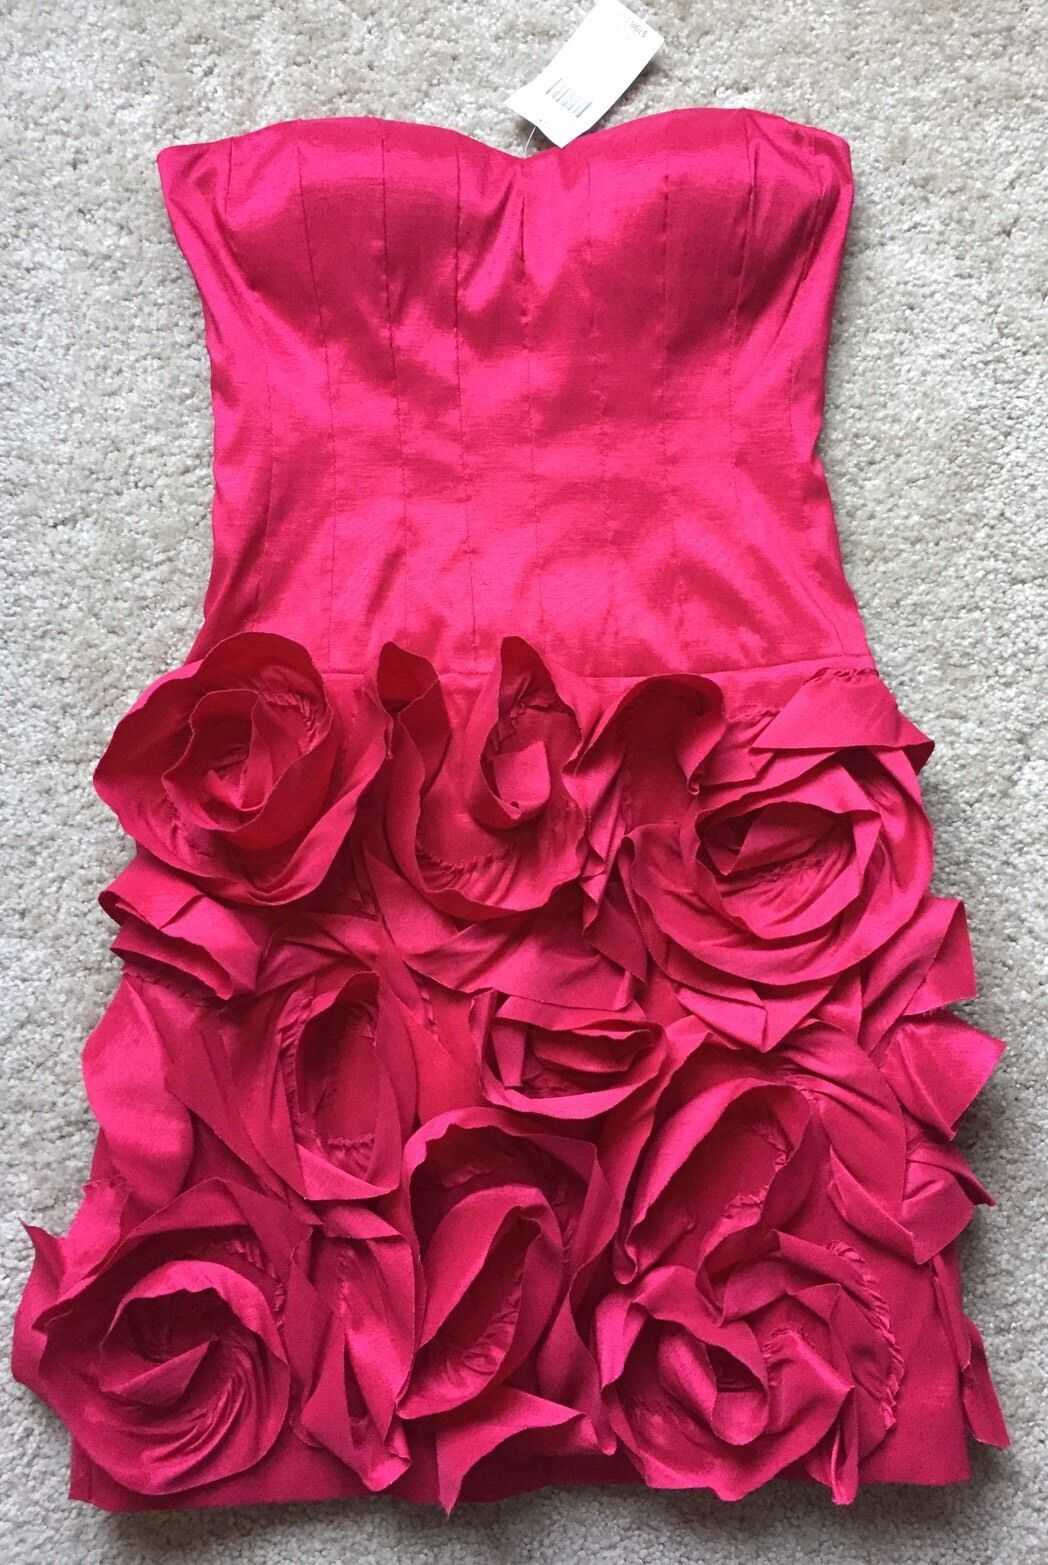 NWT  Max And Cleo Women's Cherry Red Floral Strapless Dress Size 2